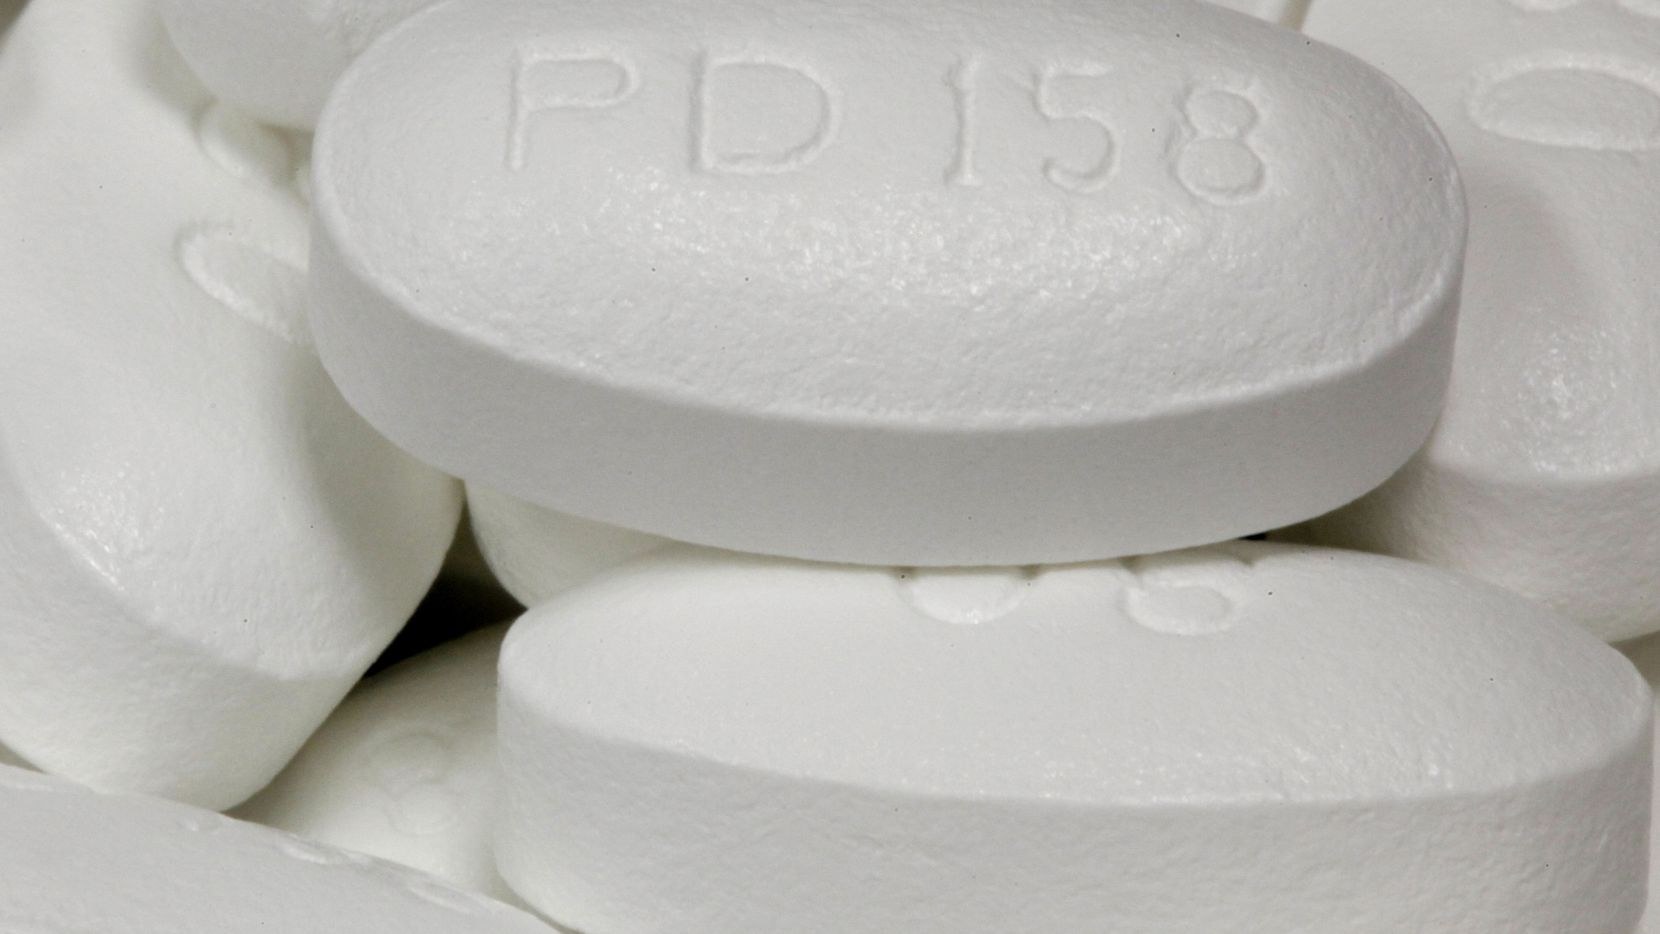 HOLD FOR RELEASE UNTIL 8:30 P.M. EDT ON THURSDAY, APRIL 24, 2014; THIS STORY MAY NOT BE PUBLISHED, BROADCAST OR POSTED ONLINE BEFORE 8:30 P.M. EDT ON THURSDAY, APRIL 24, 2014 - FILE - This June 14, 2011 file photo shows the drug Lipitor at Medco Health Solutions Inc., in Willingboro, N.J. In a study published online Thursday, April 4, 2014 in JAMA Internal Medicine, 10 years of U.S. data suggest cholesterol-lowering statins are giving patients a license to pig out. Calorie and fat intake increased among statin users during the decade - an indication that many patients might be abandoning heart-healthy lifestyles and assuming that drugs alone will do the trick, the study authors said. (AP Photo/Matt Rourke)